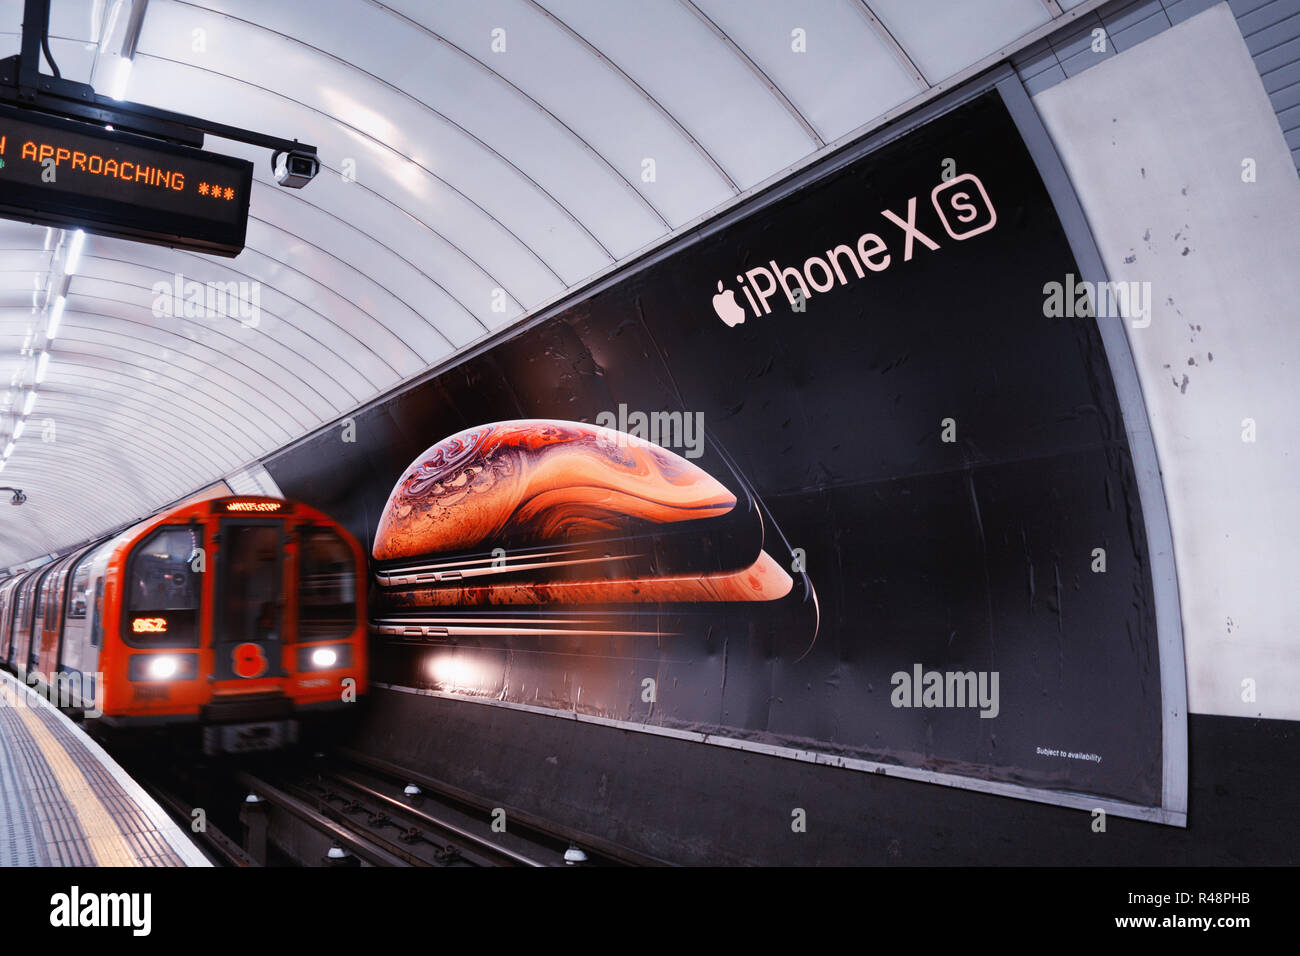 Tube train passing an ad poster for new Apple iPhone XS, advertising poster in the London Underground Track - Stock Image